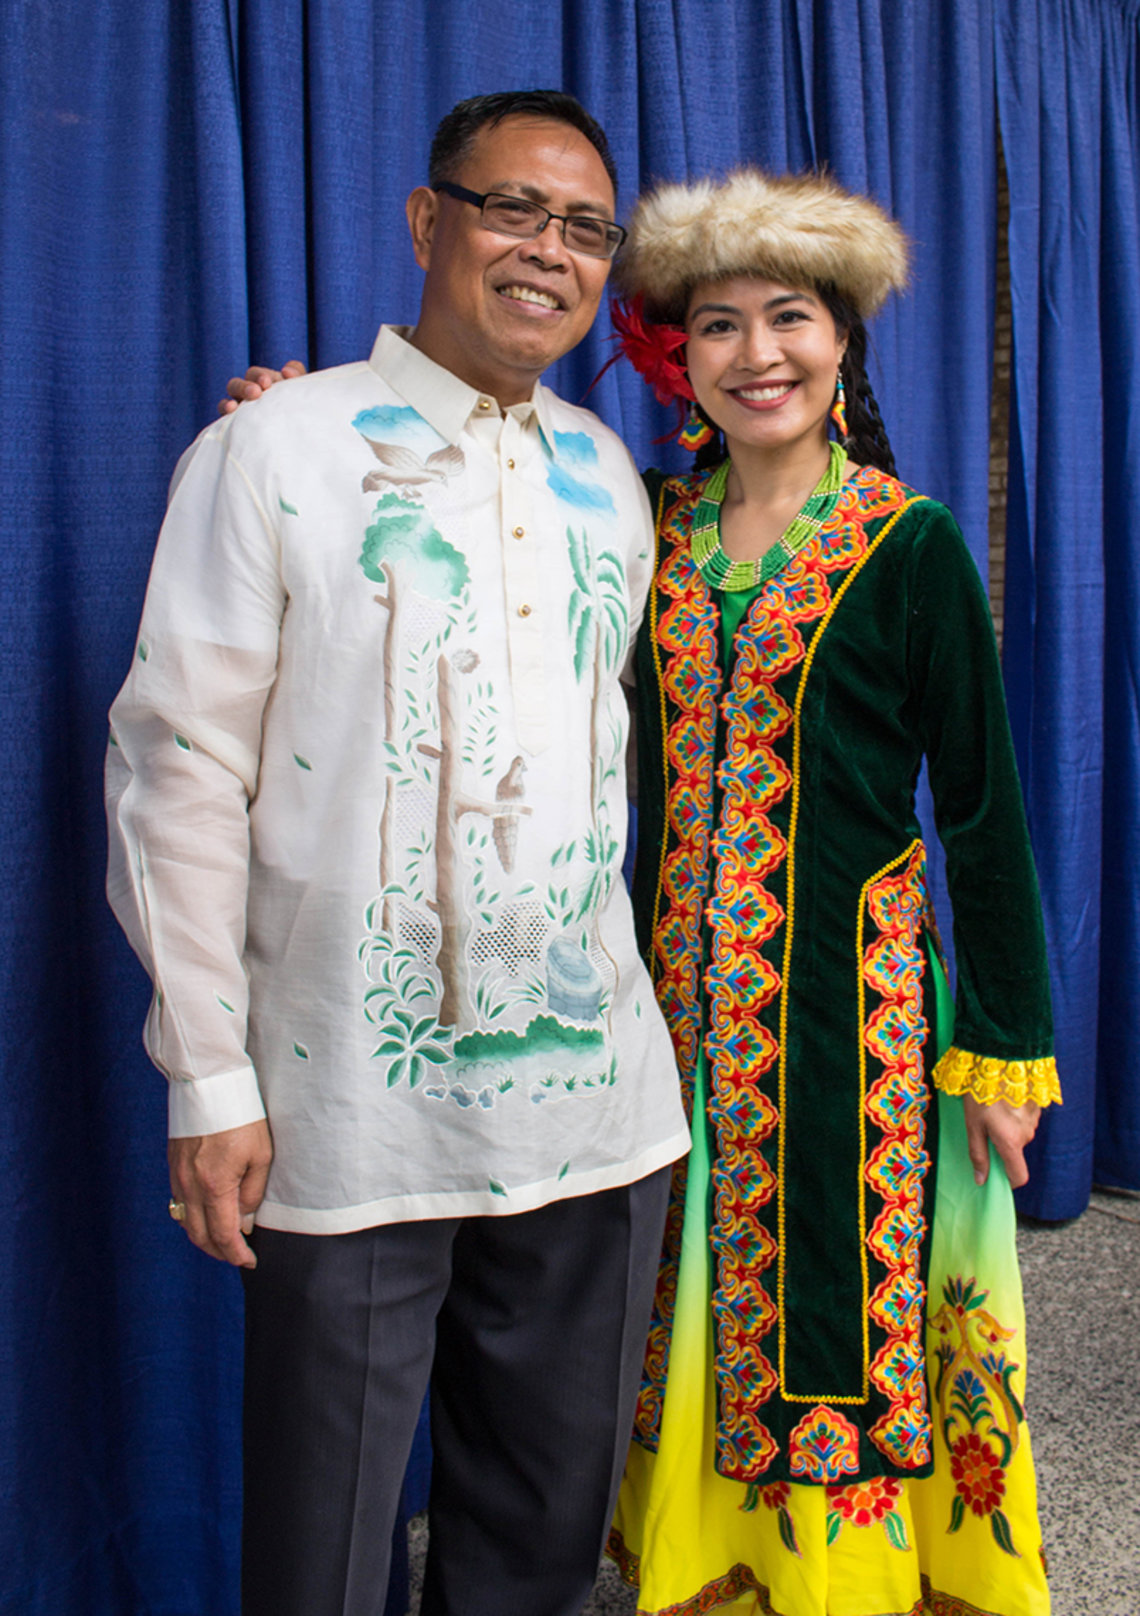 Edgar Esmaba rocks the Filipino barong with Karen David in Uighur traditional dress and hat.